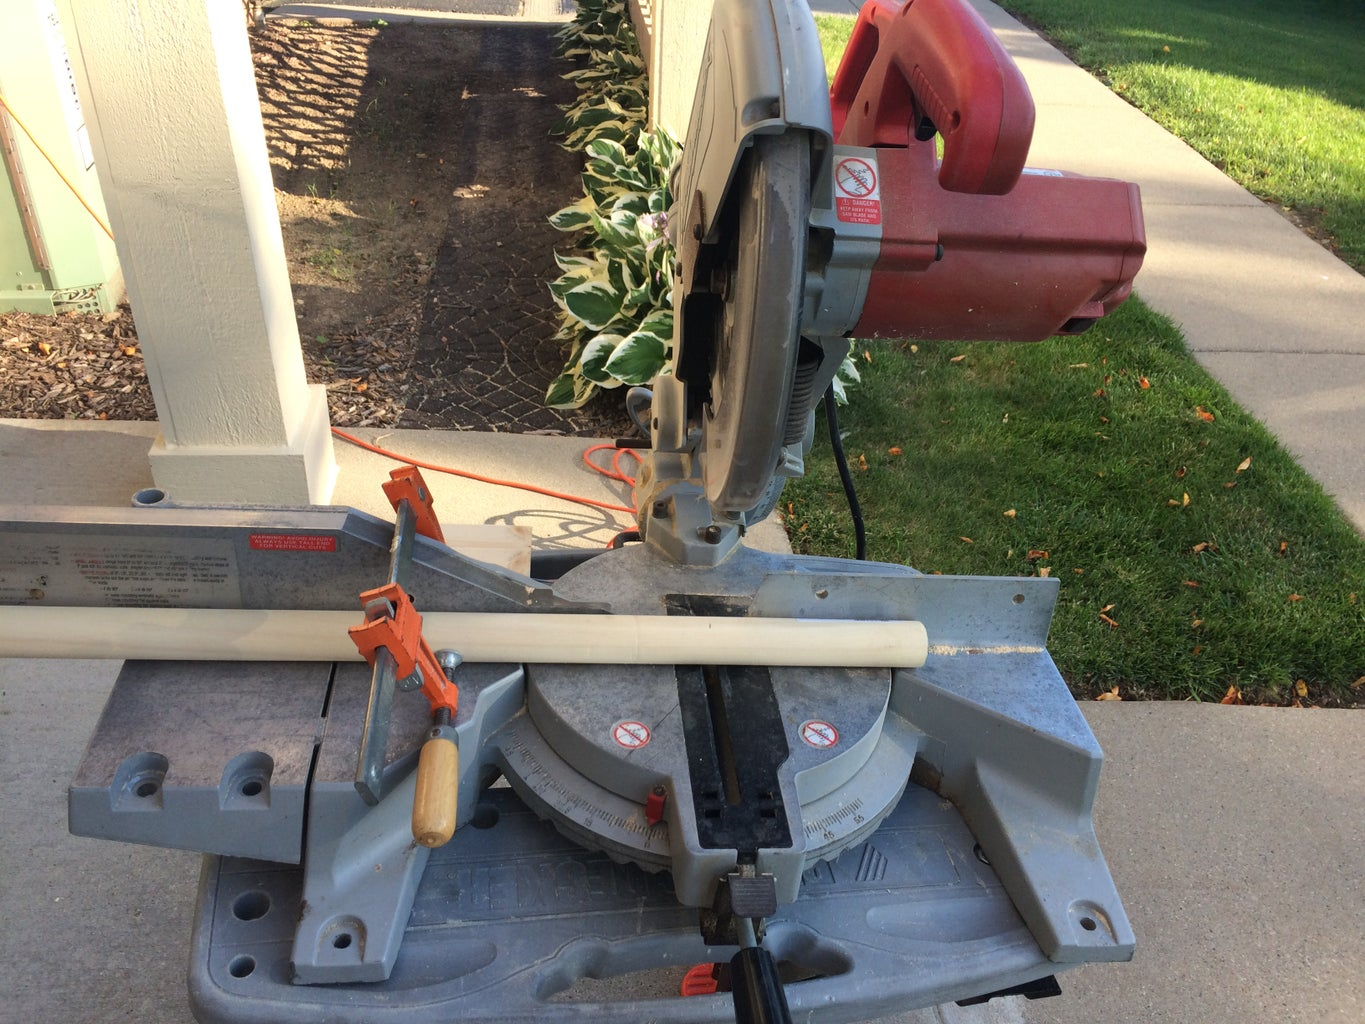 Cut the Wooden Dowel Handle to Length